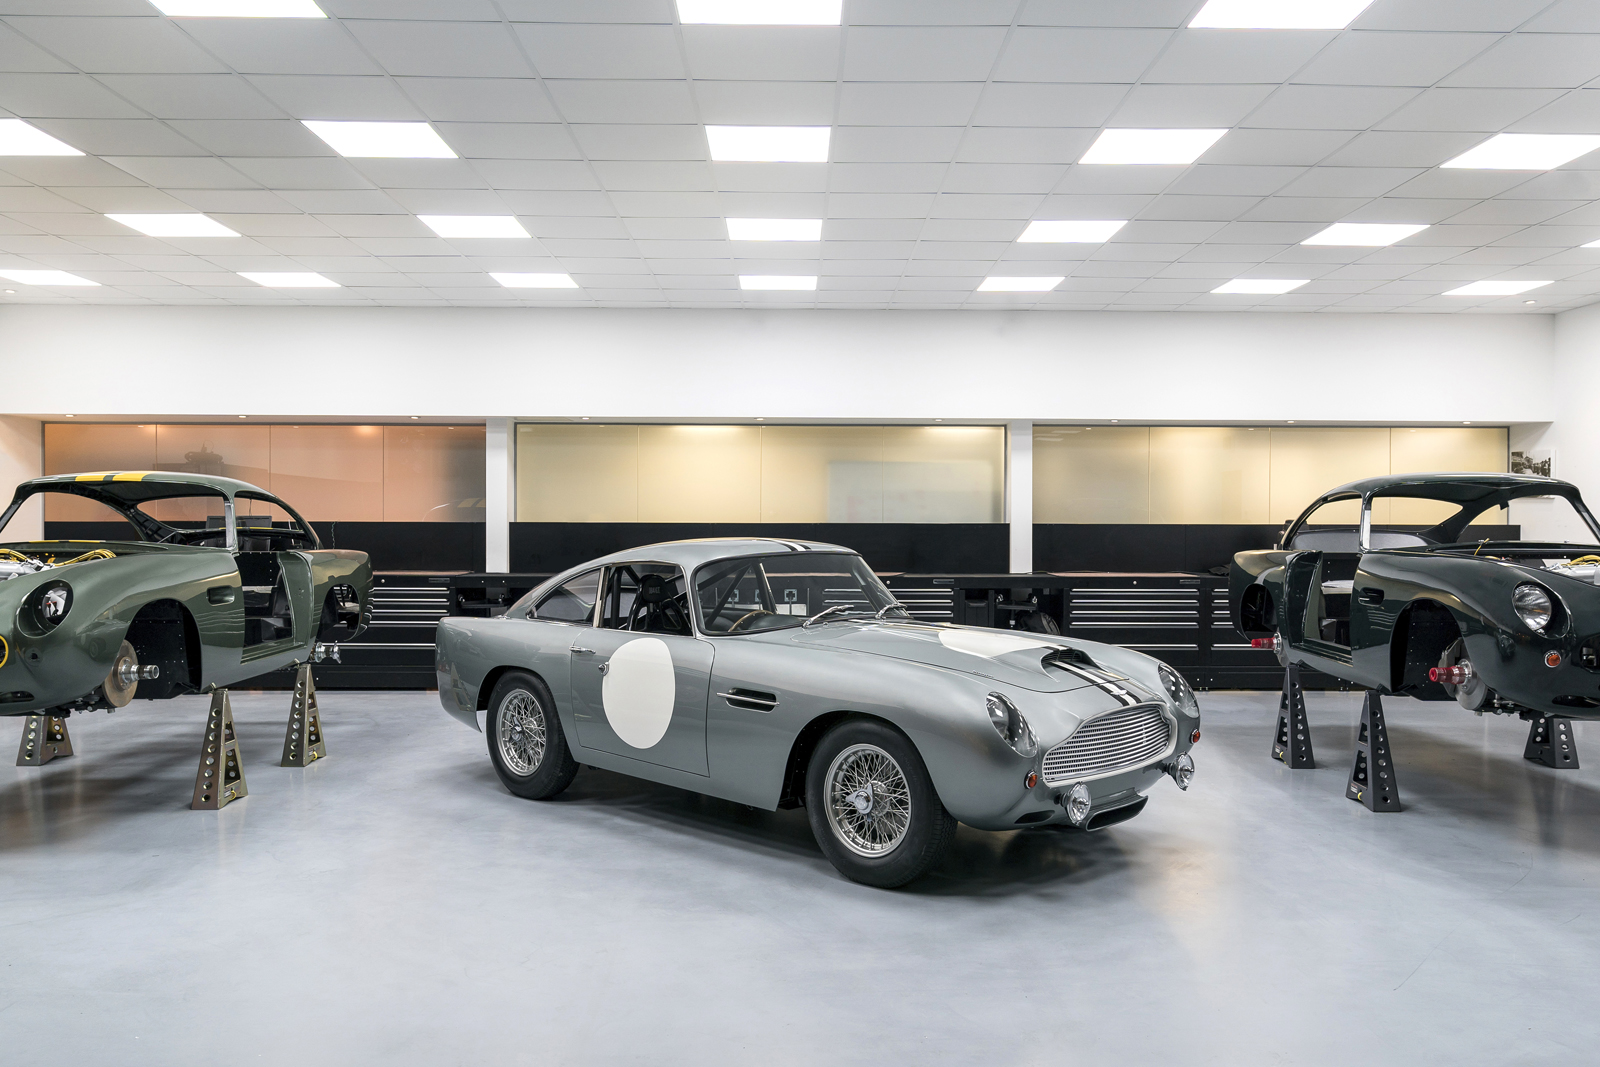 aston martin sets to work building its gorgeous db4 g.t.